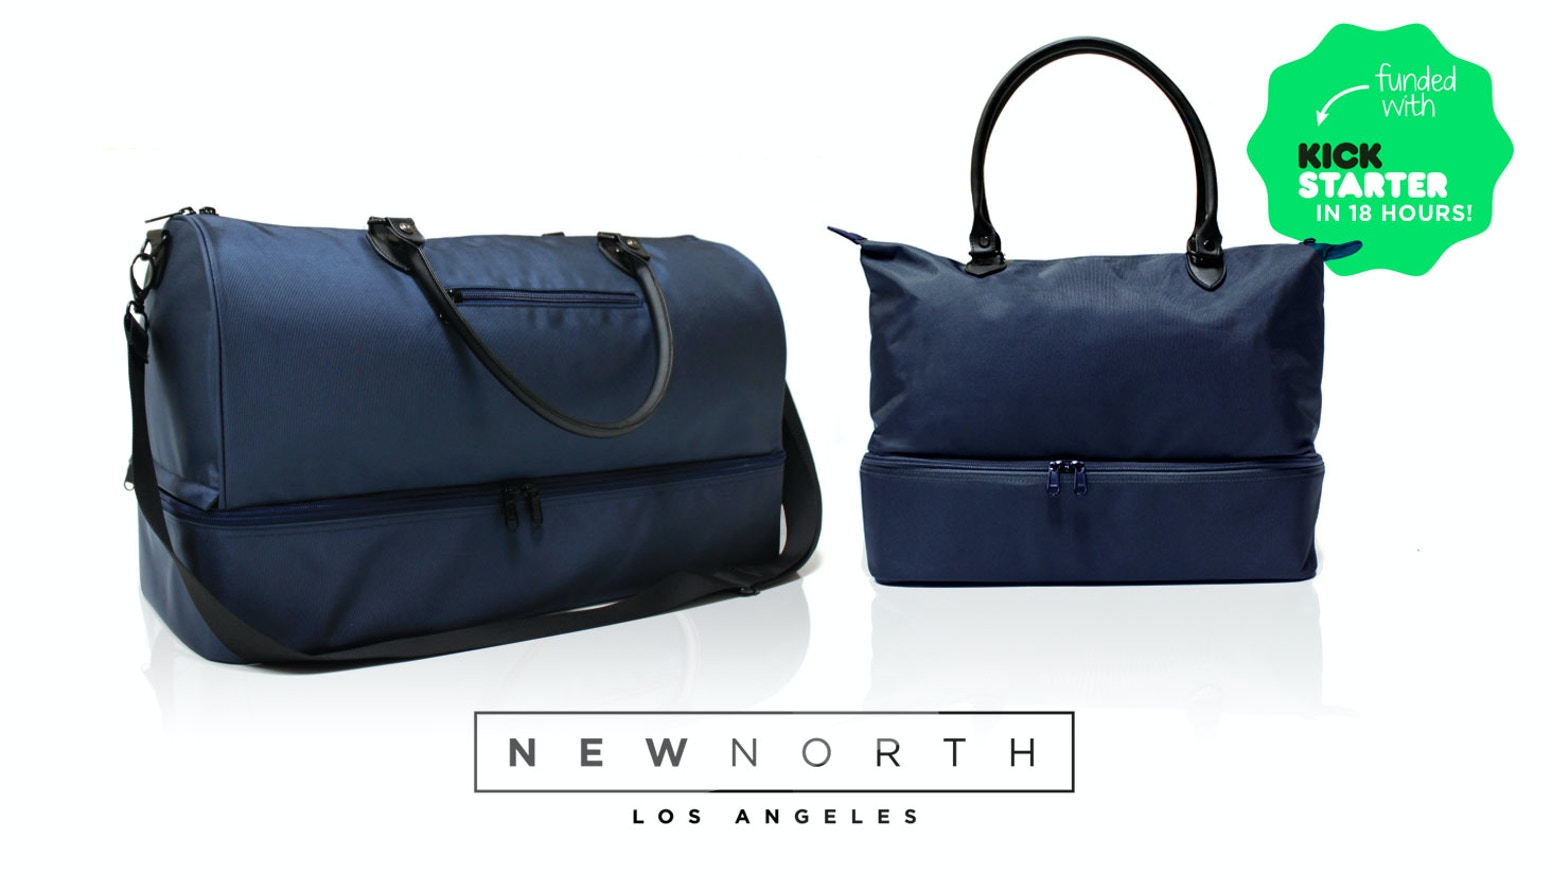 Meticulously designed duffle and tote bags. Merging classic modern style with versatile functions to complement your lifestyle.